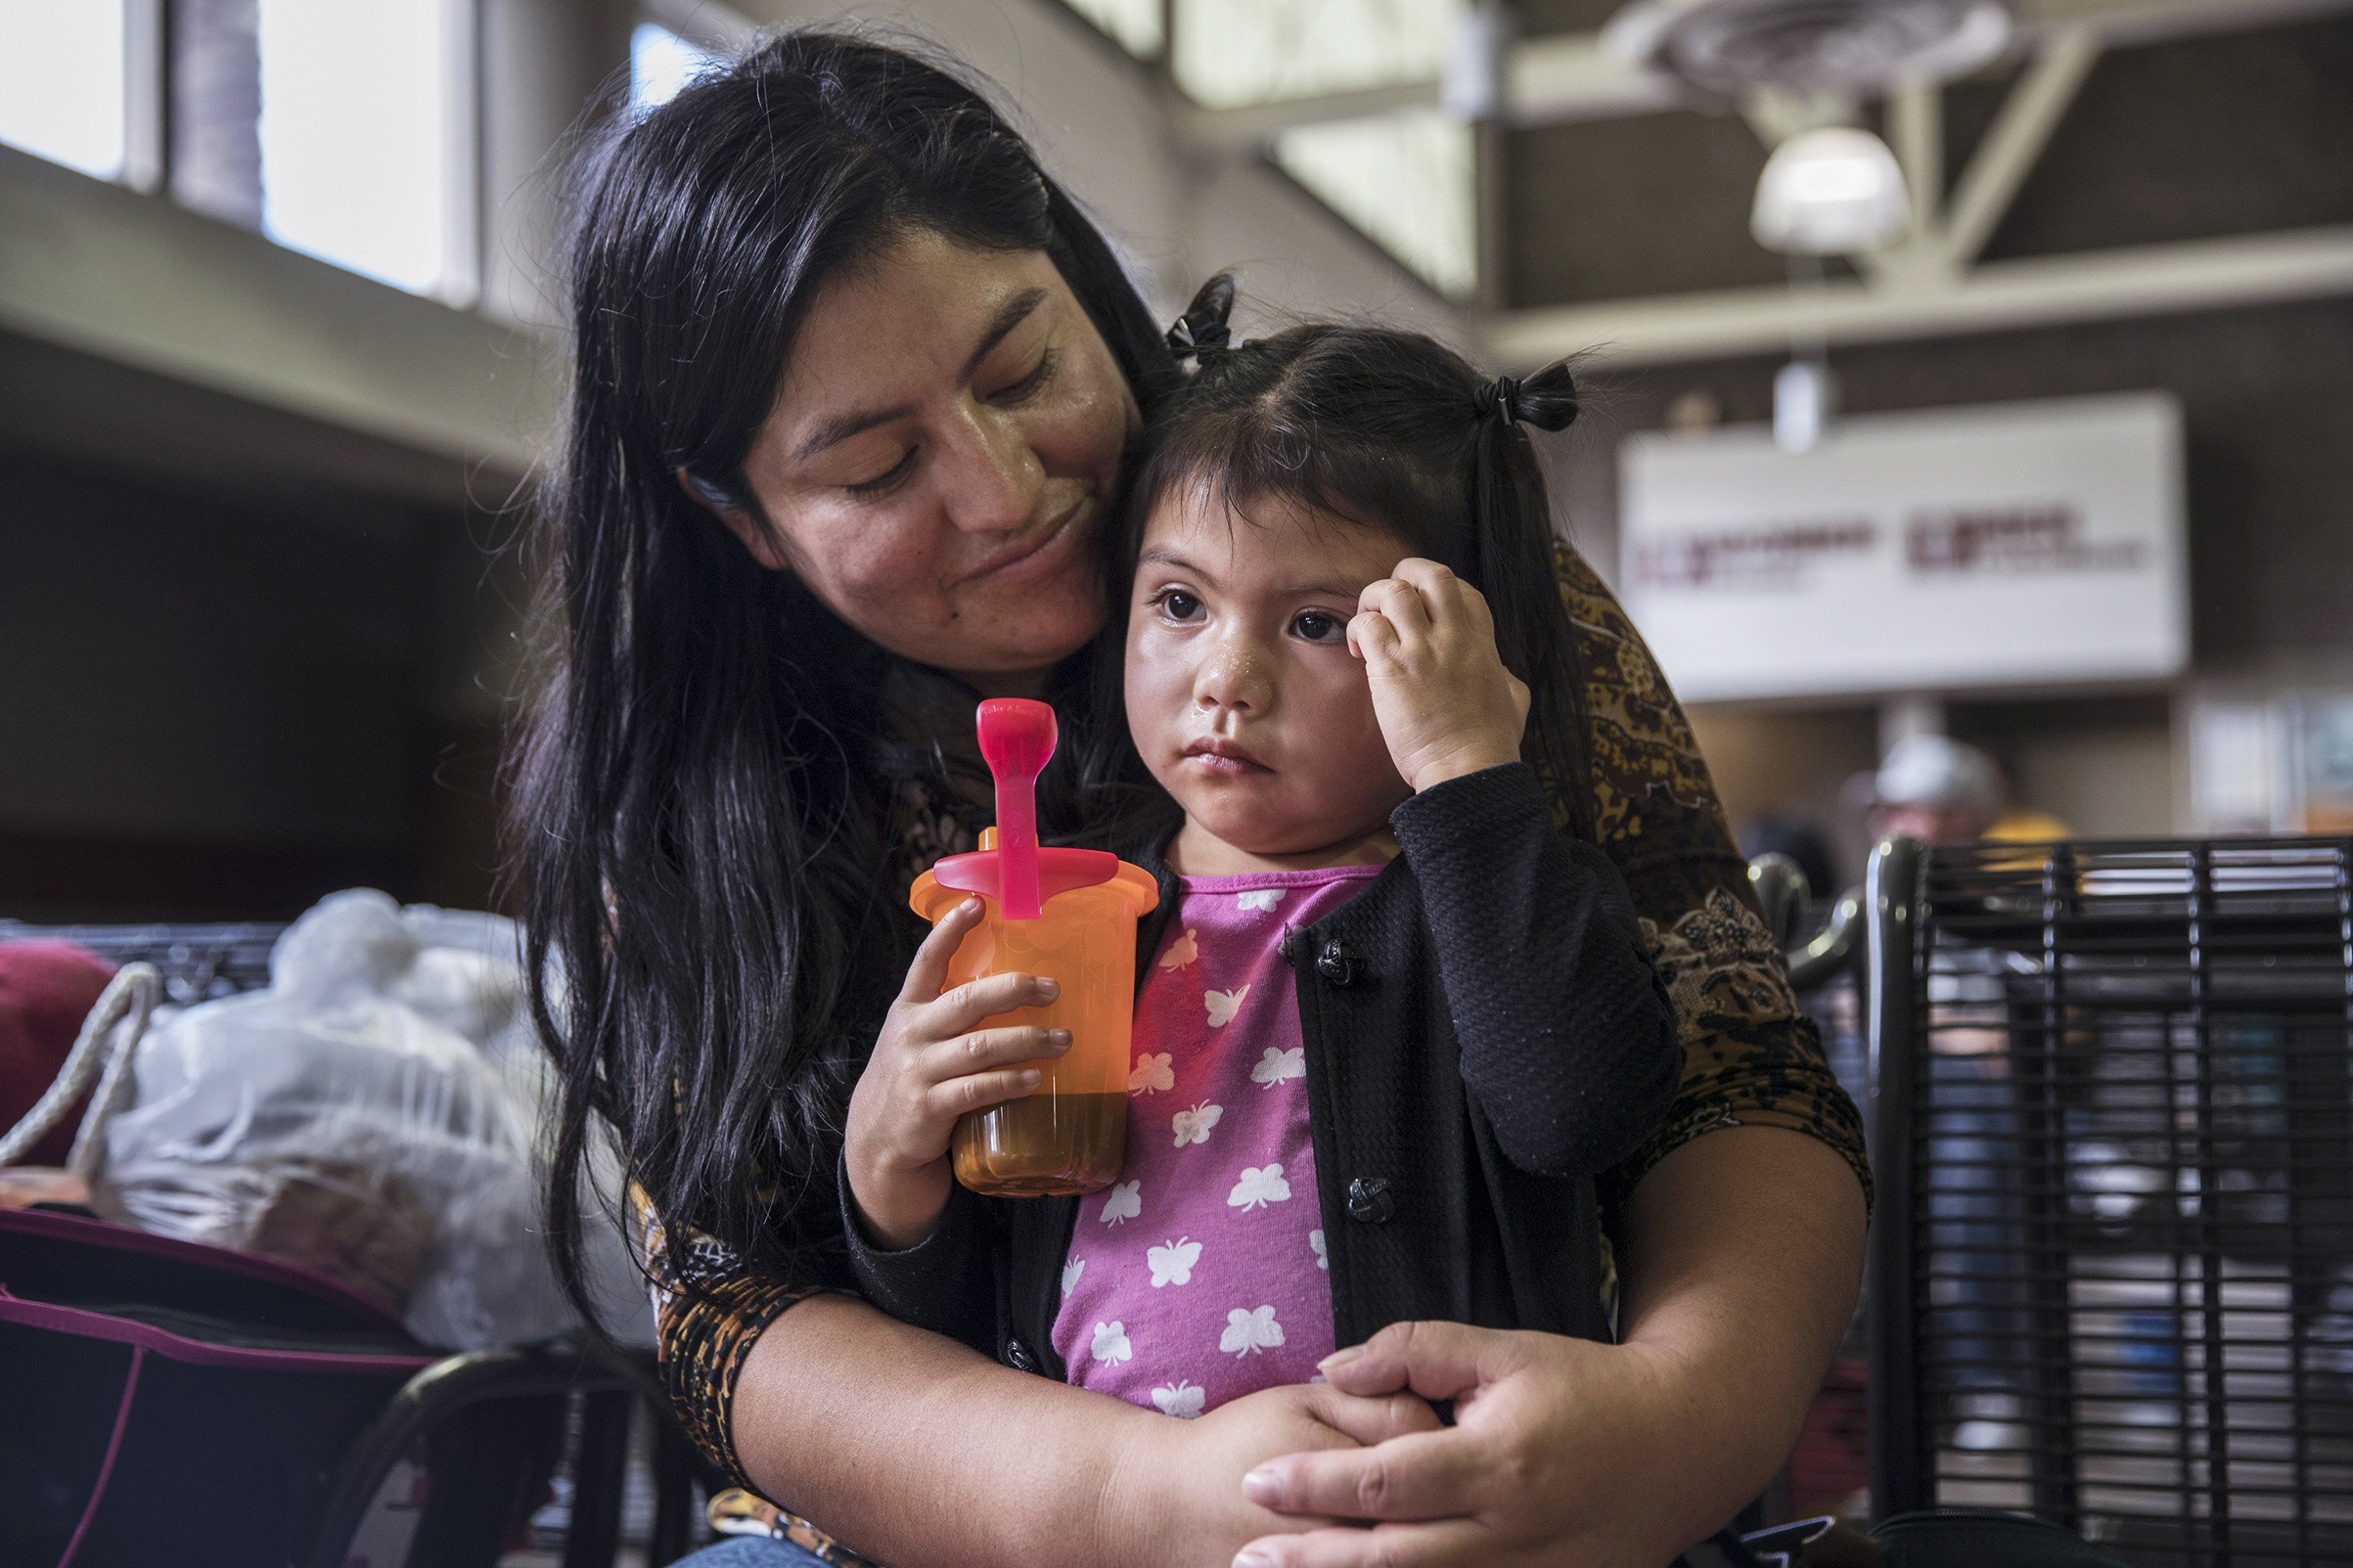 Milka Pablo was reunited with her daughter Darly, 3, but thousands of migrant families remain separated